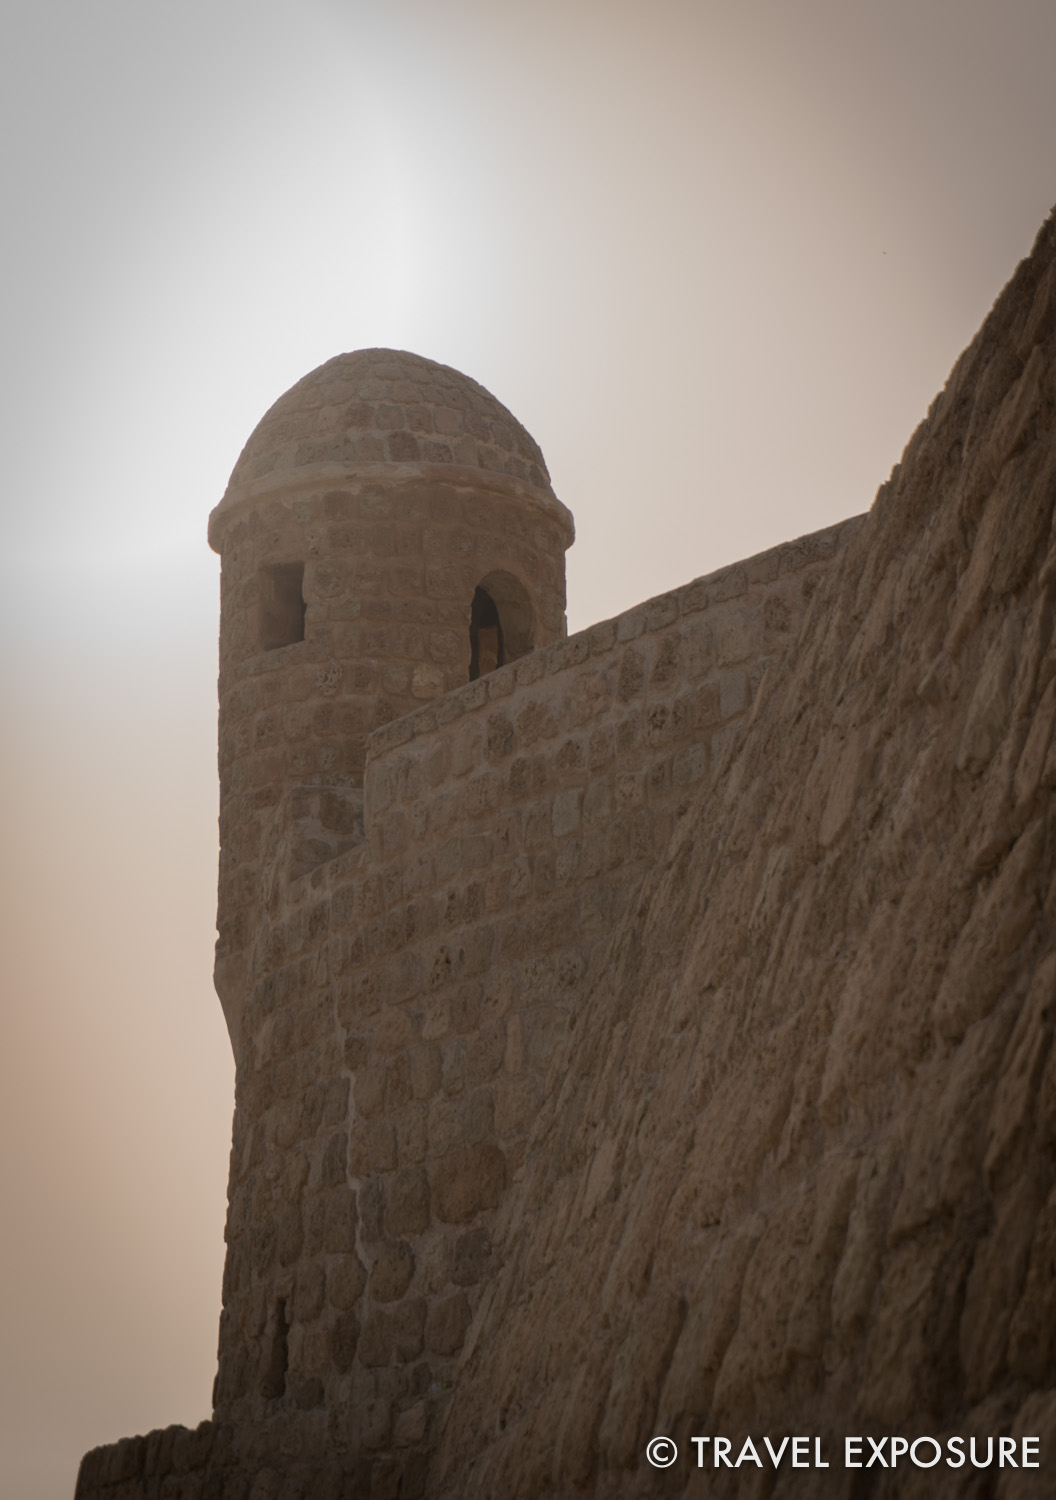 Exploring the ancient Bahrain Fort.